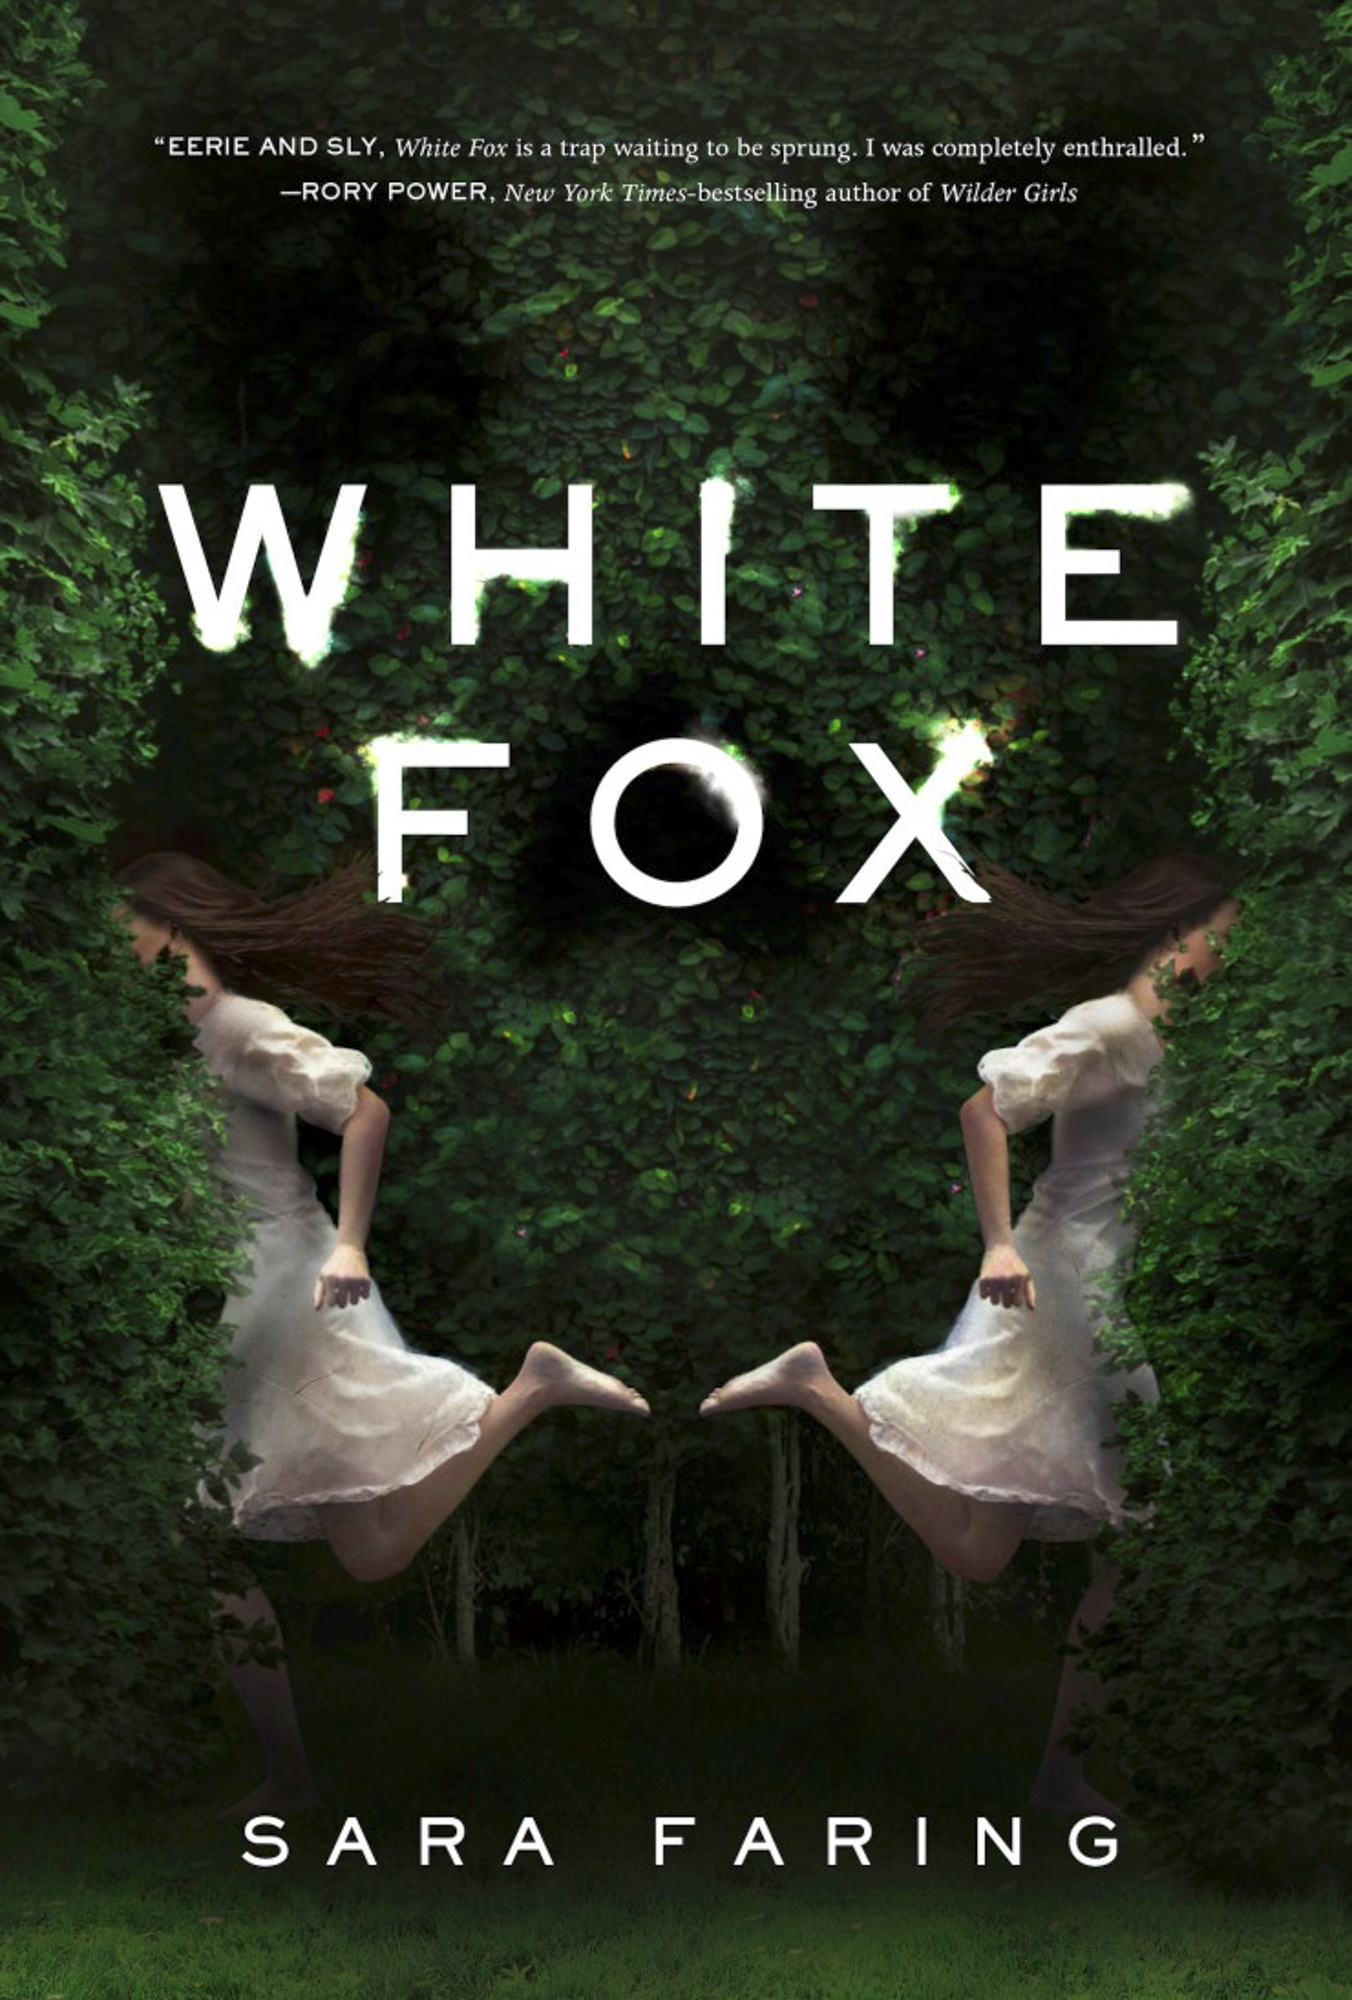 White Fox by Sara Faring